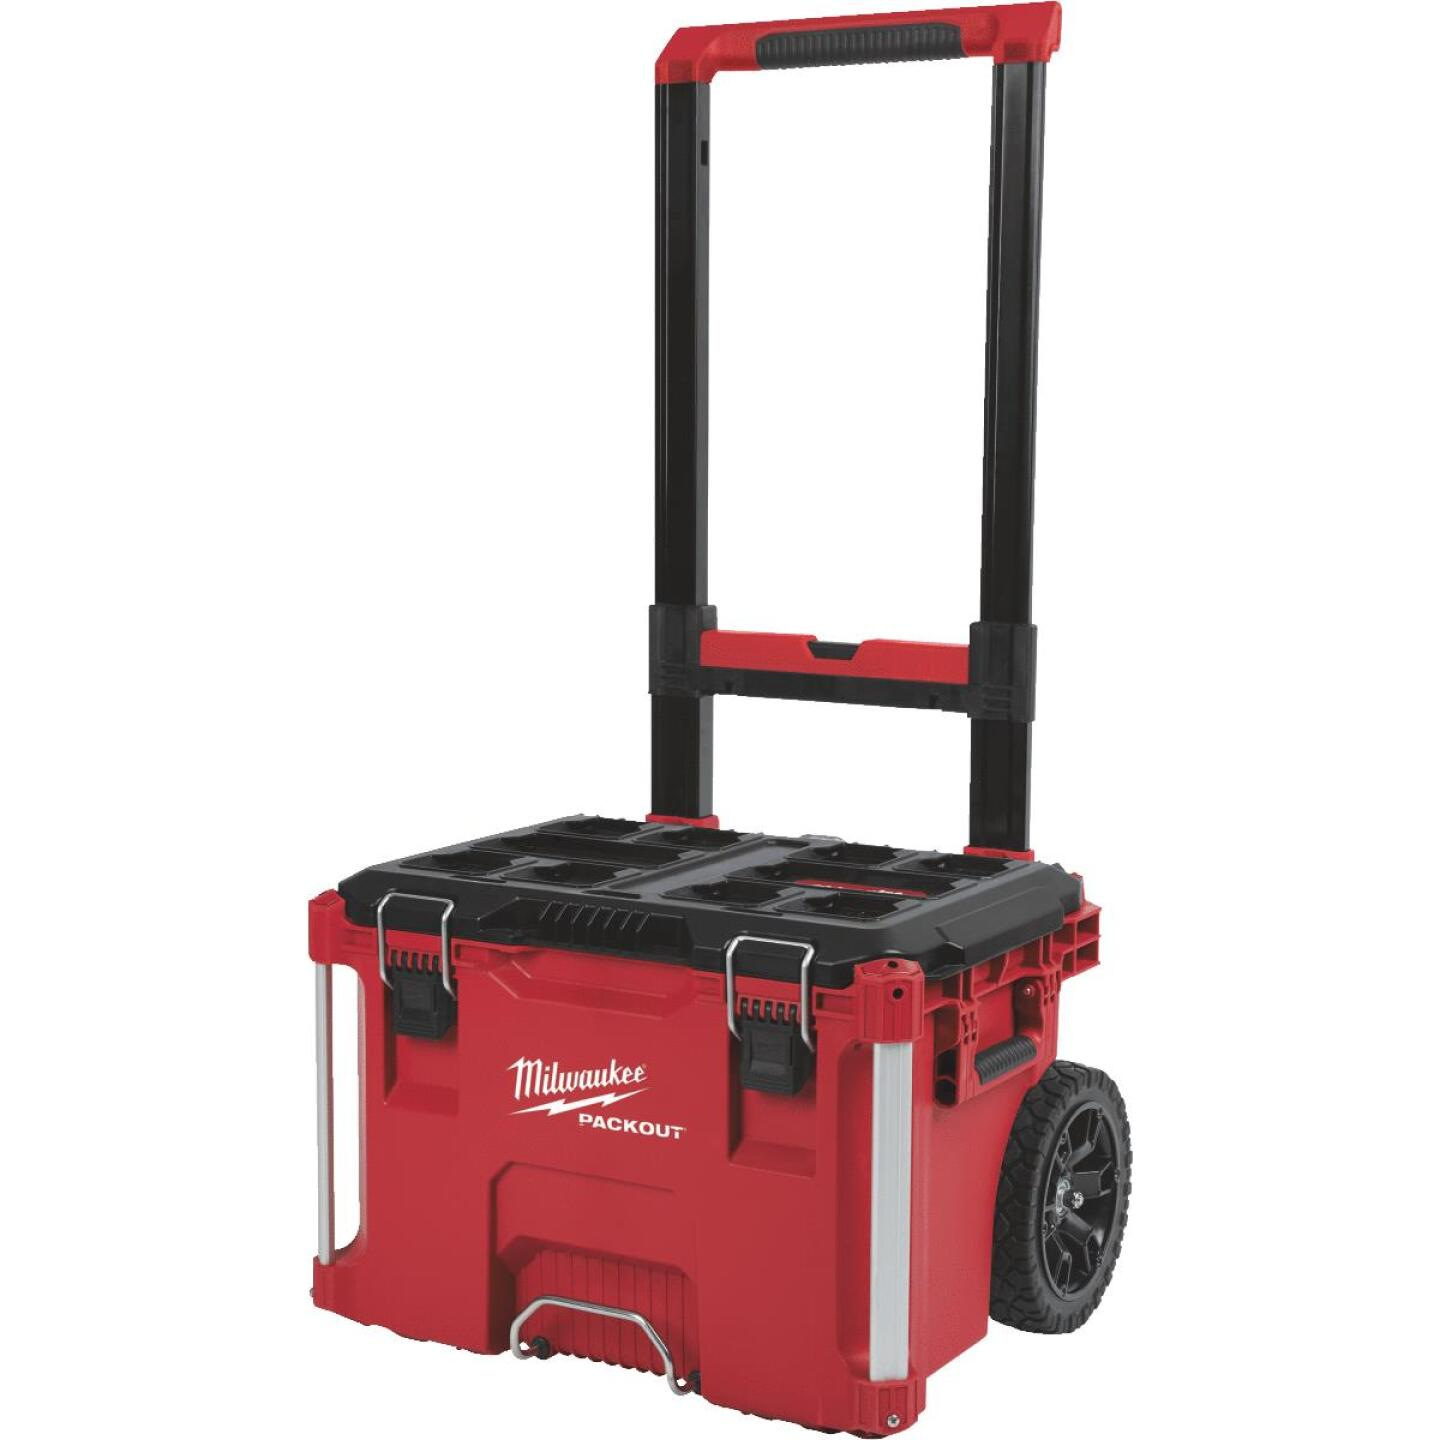 Milwaukee PACKOUT 22 In. Rolling Toolbox Image 1